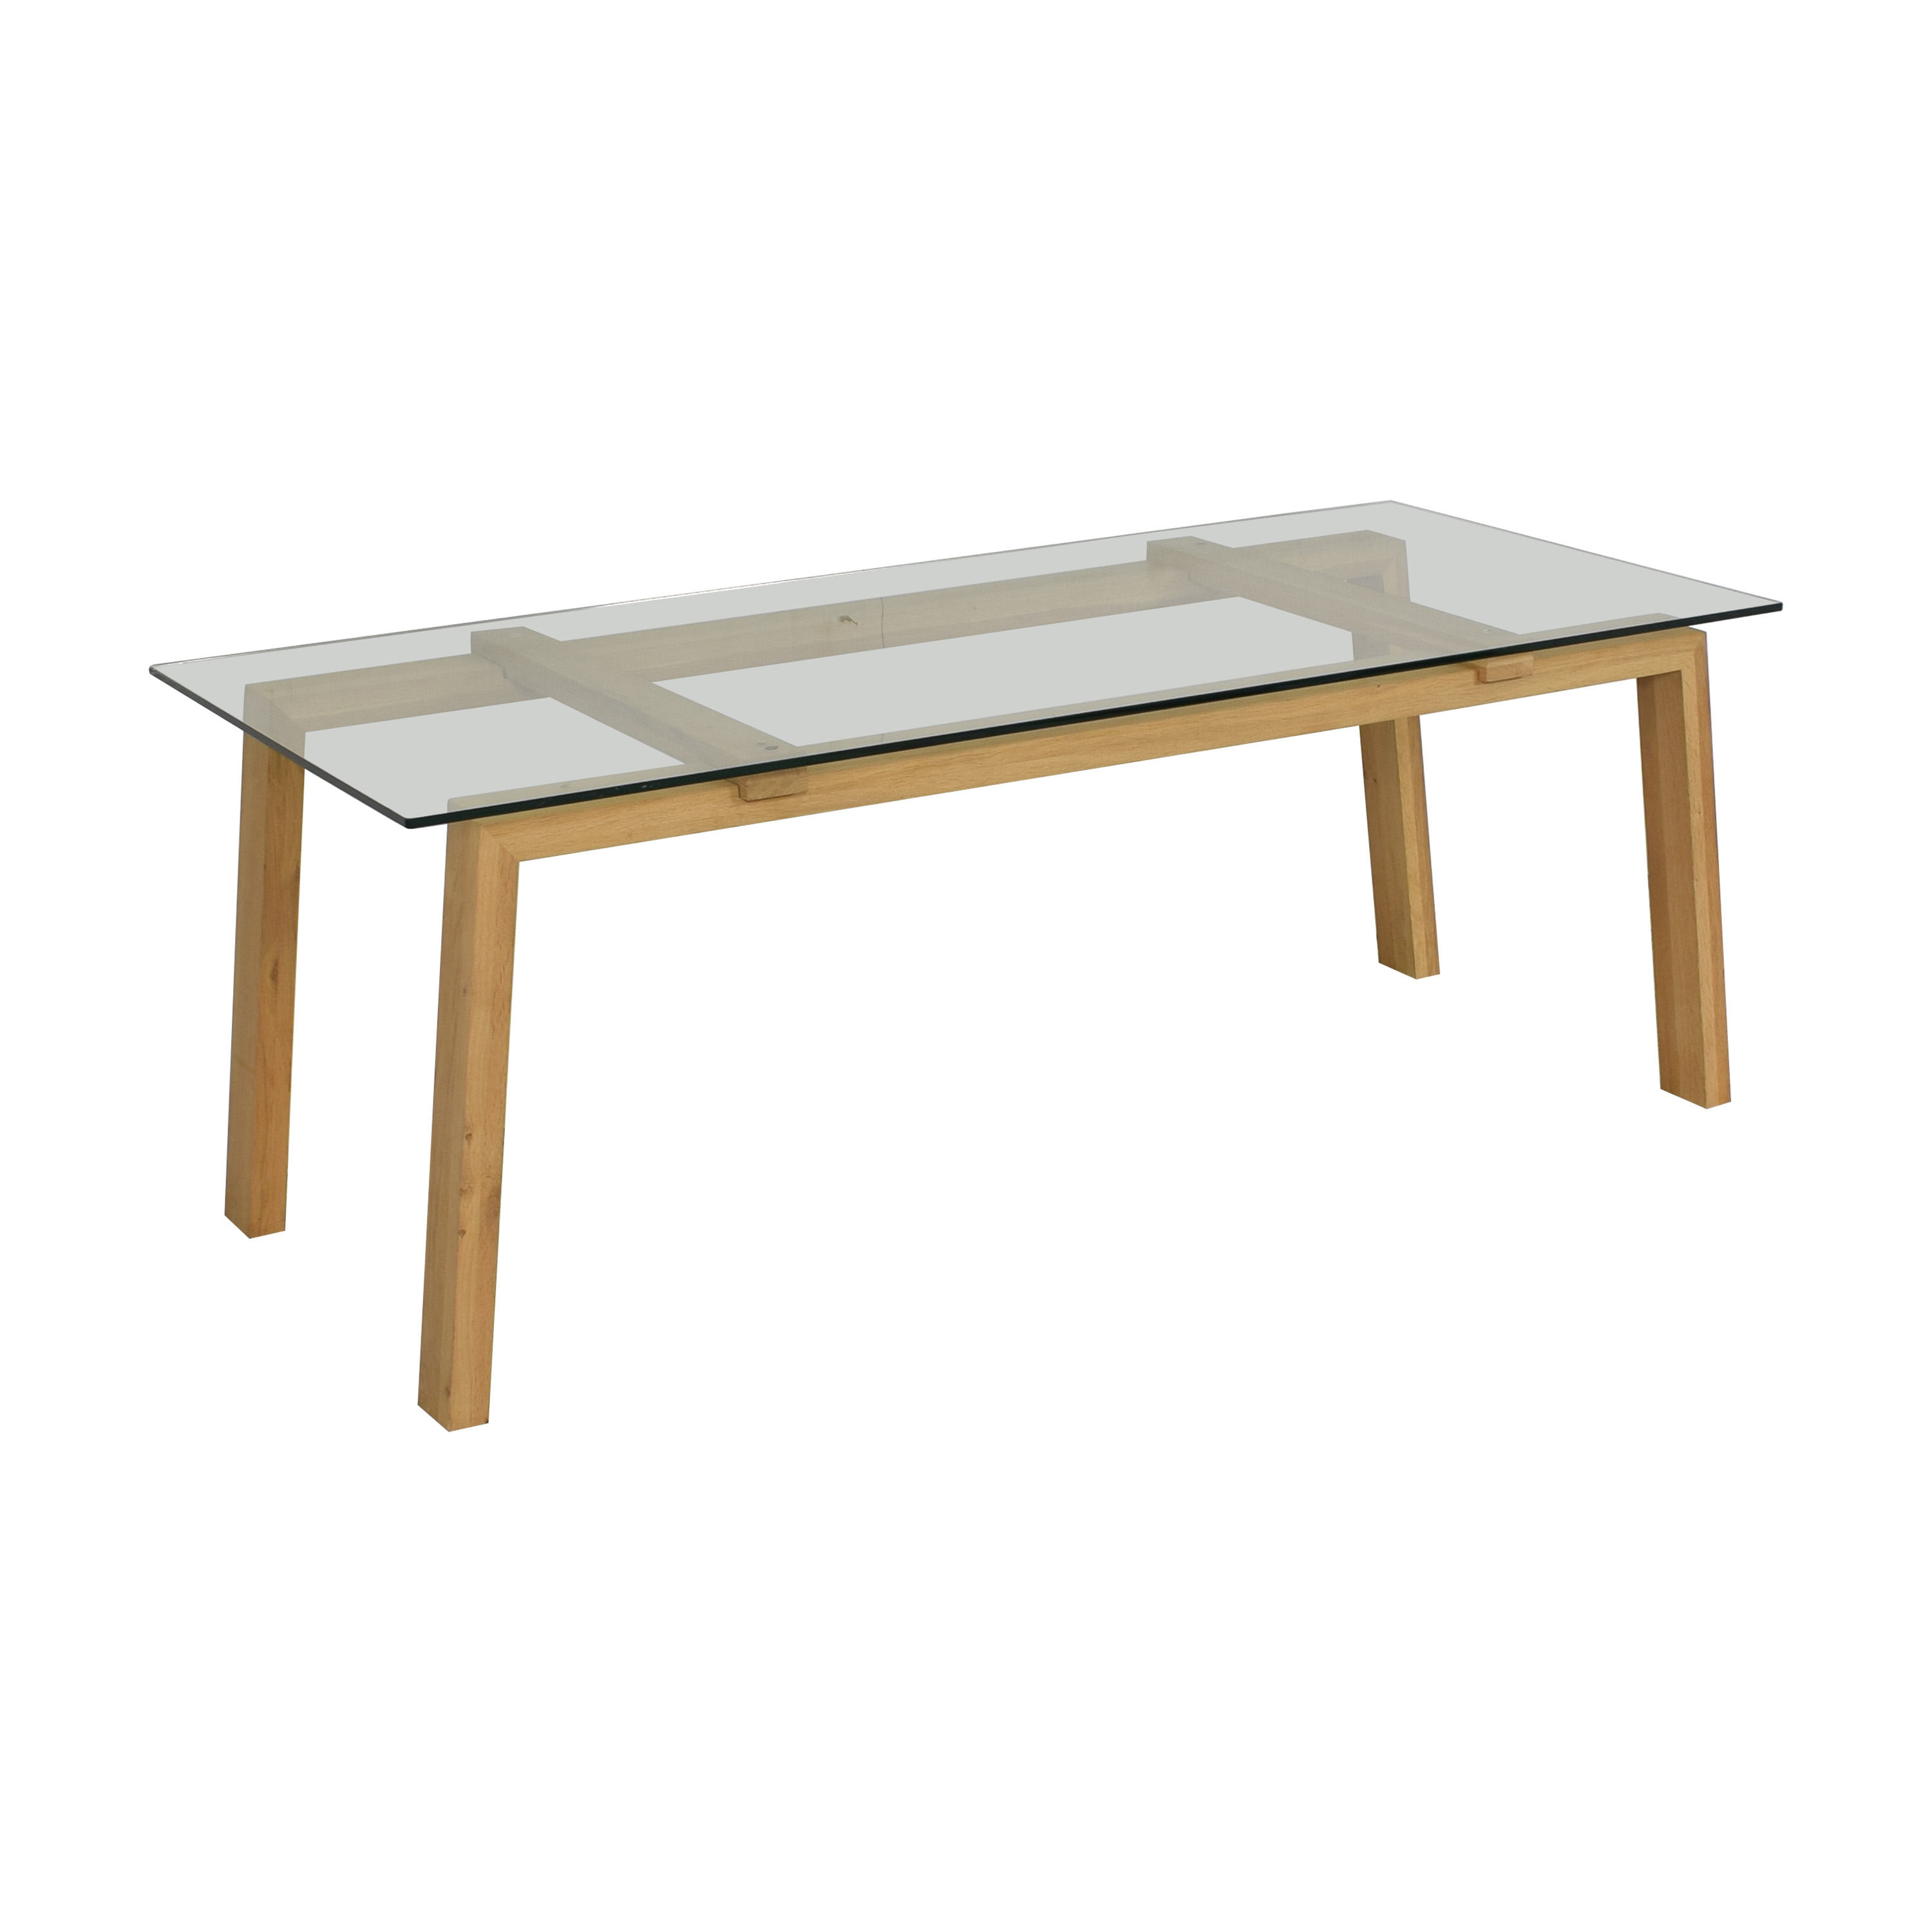 buy ABC Carpet & Home Ethnicraft Dining Table with Wood Base ABC Carpet & Home Tables